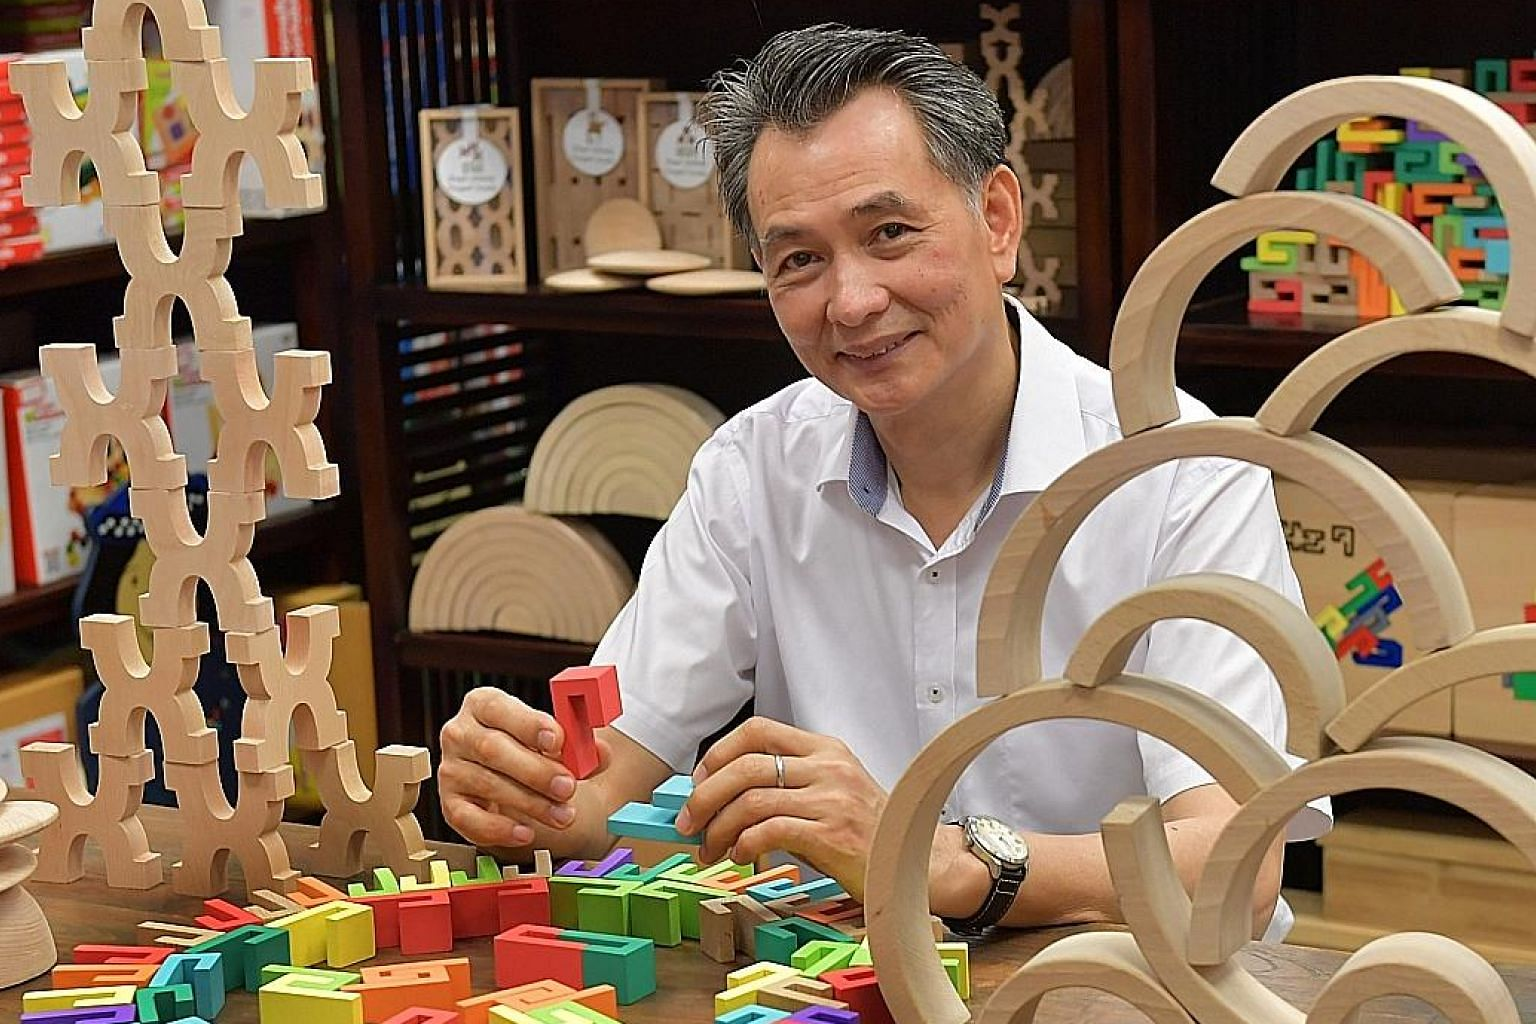 """After failing at several jobs, Mr Gary Seow started his own business in educational toys and learning resources. To him, dyslexia is a gift: """"As learning is so hard for me, it forces me to think out of the box and I find that the designs of my new to"""